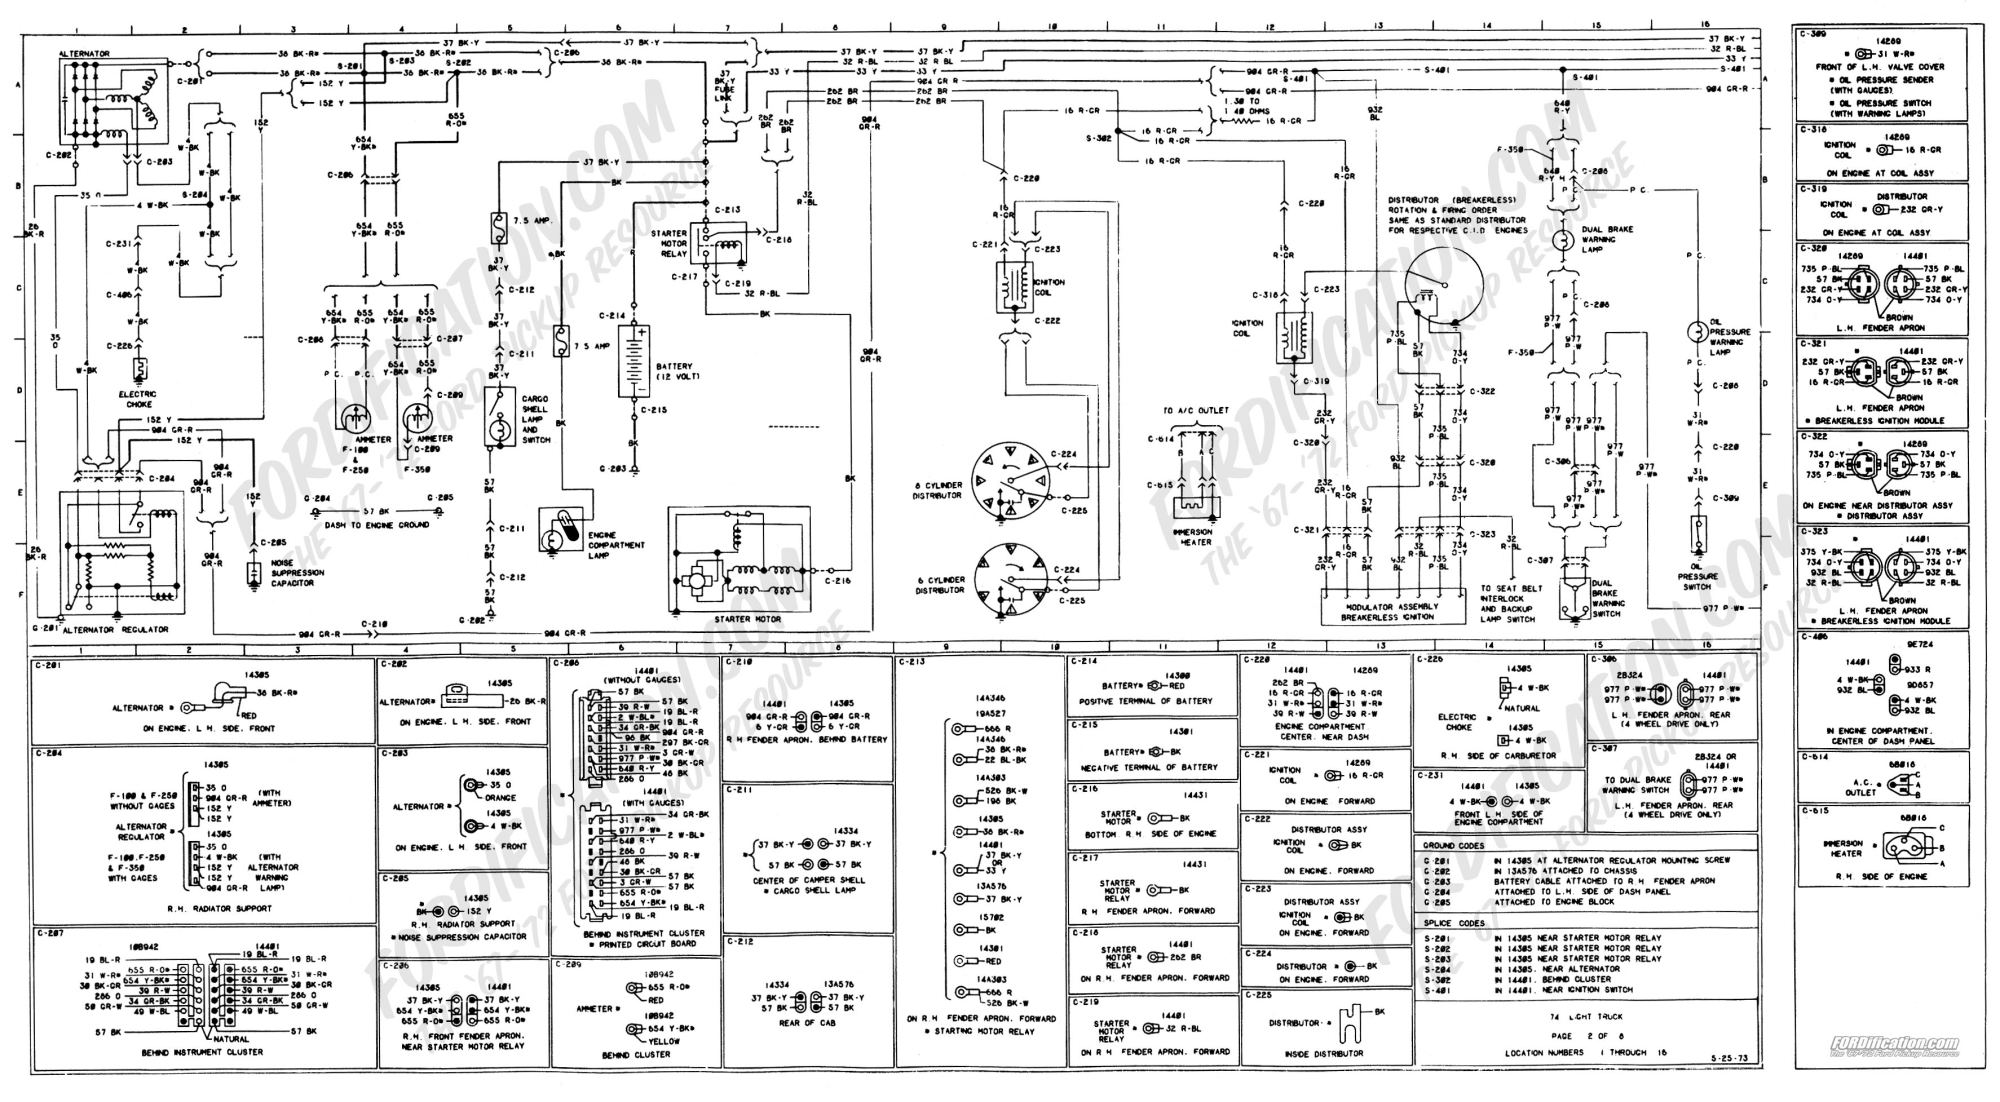 hight resolution of 1978 f350 fuse box simple wiring diagram schema fuse box diagram for 05 f350 super duty 1978 f350 fuse box